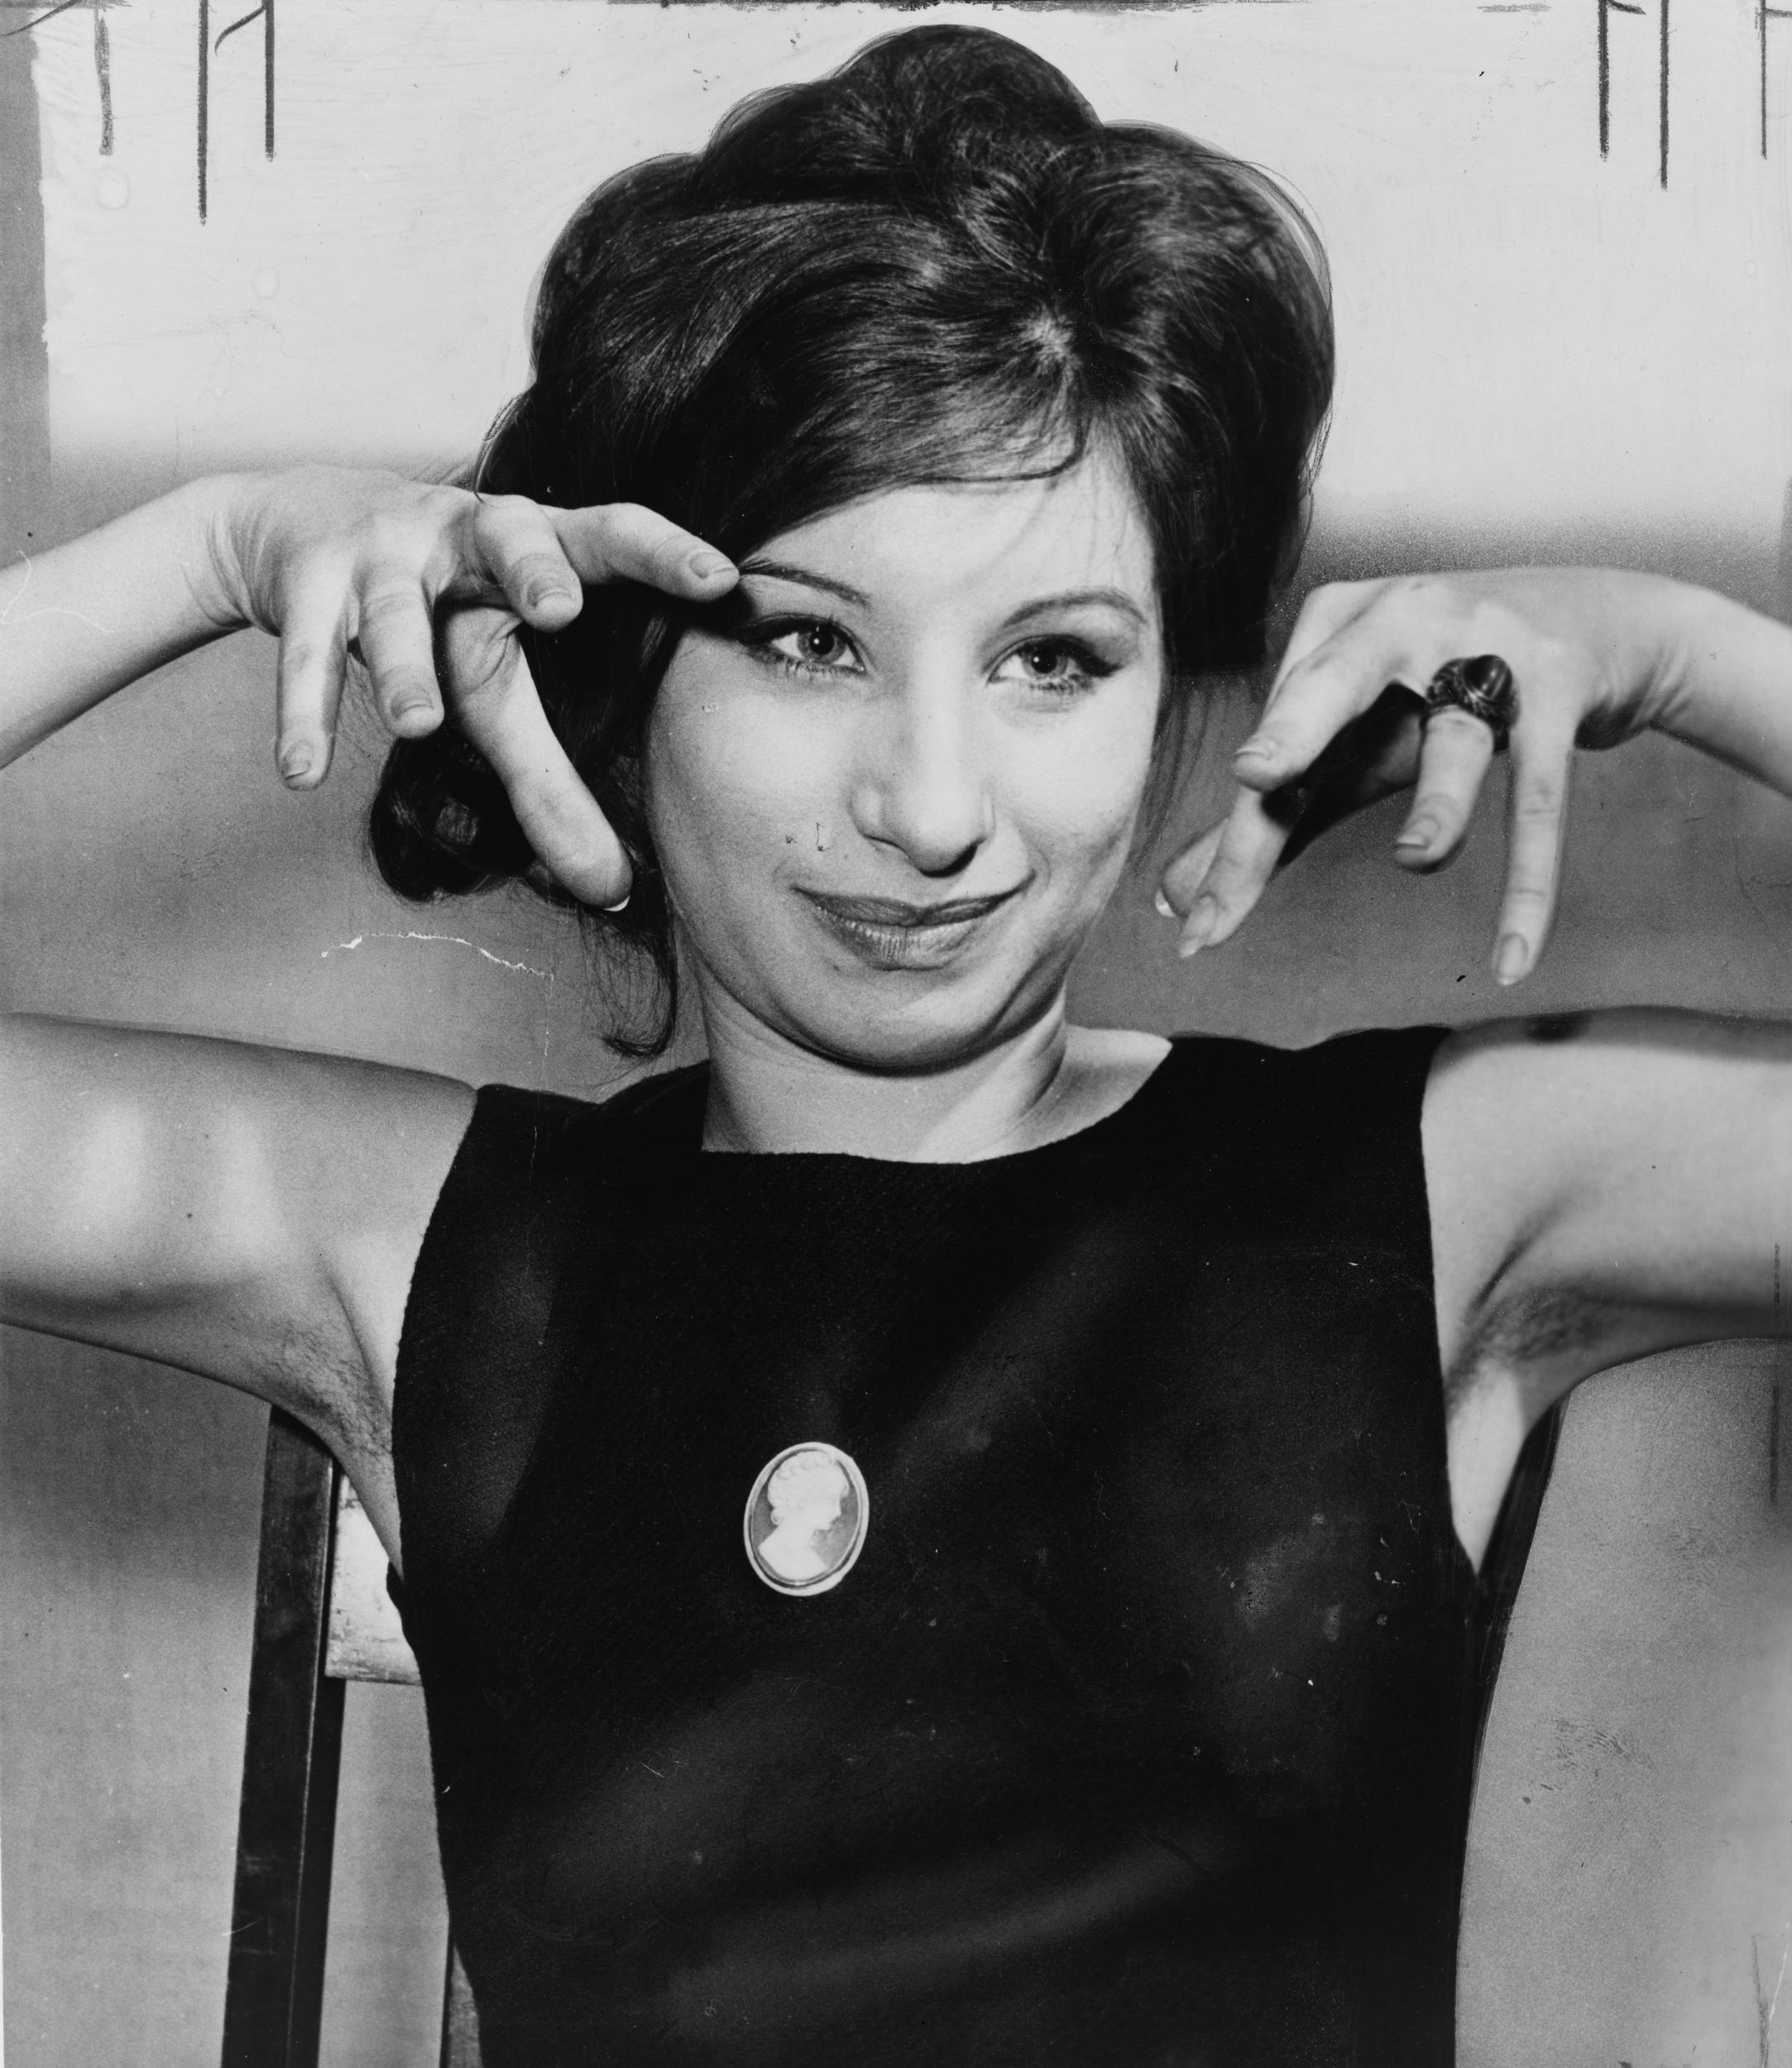 File:Barbra Streisand 1962.jpg - Wikimedia Commons